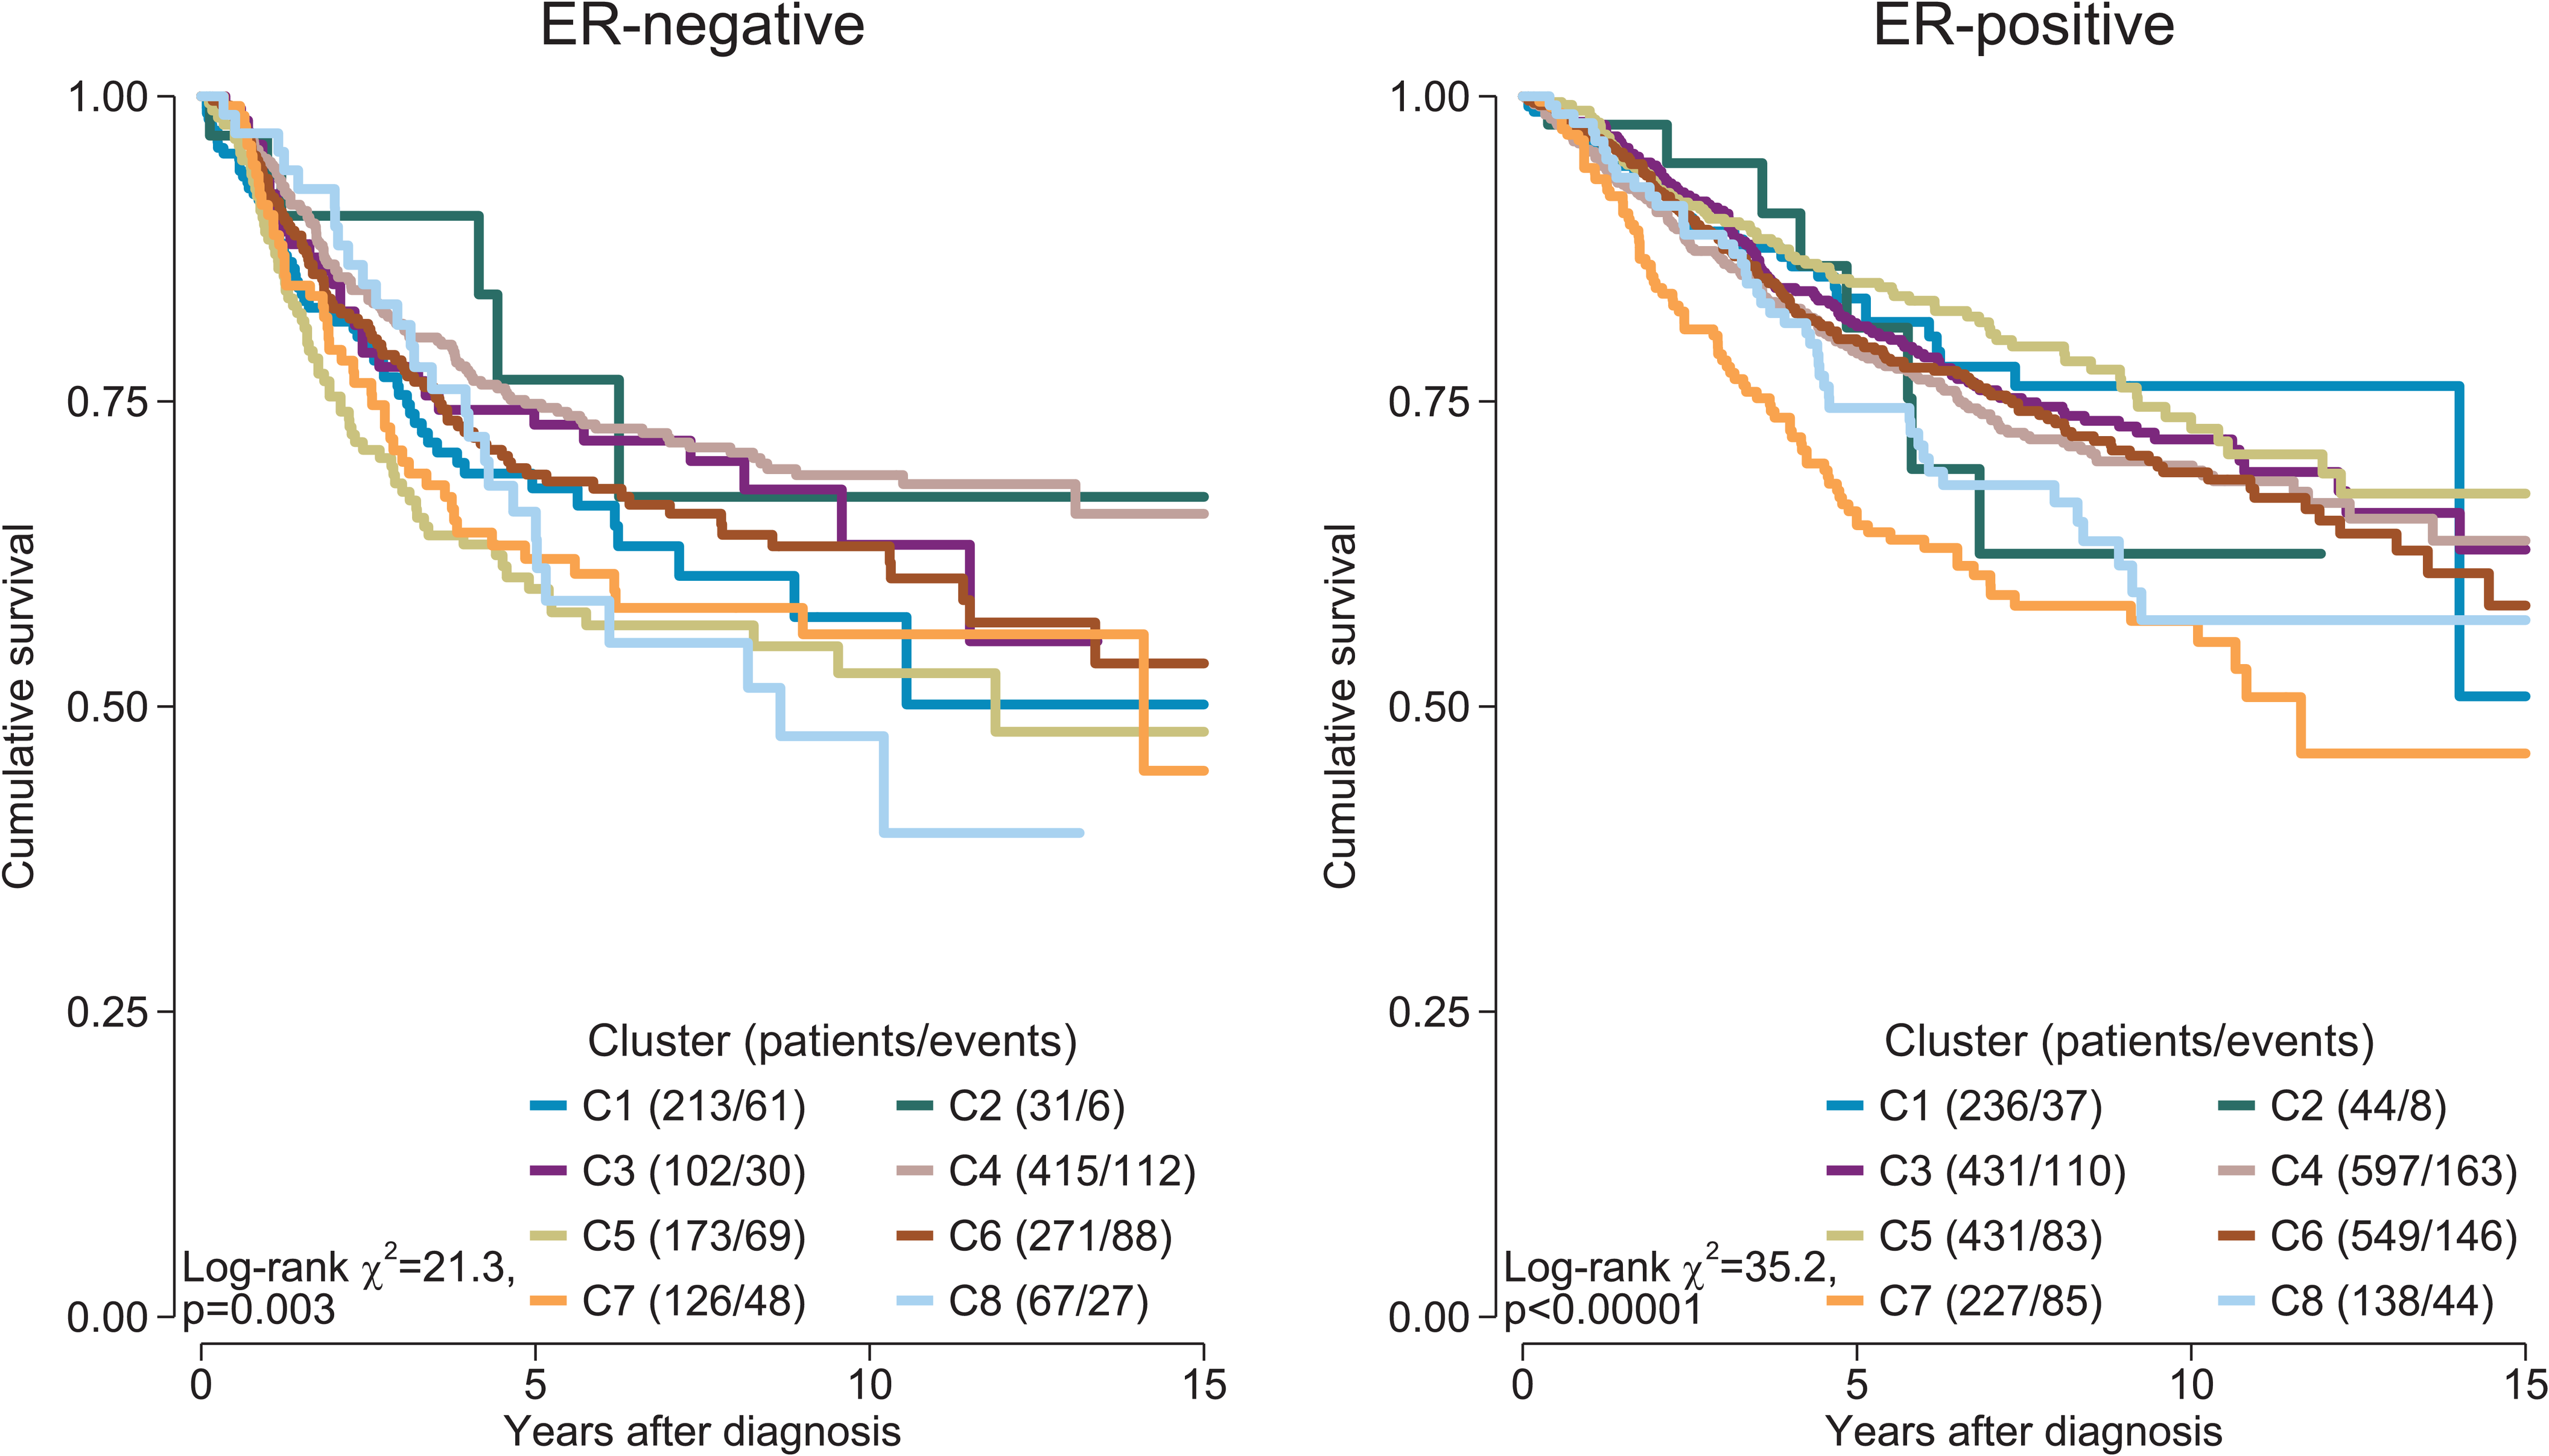 Survival plots by cluster separately for ER-positive and ER-negative disease.